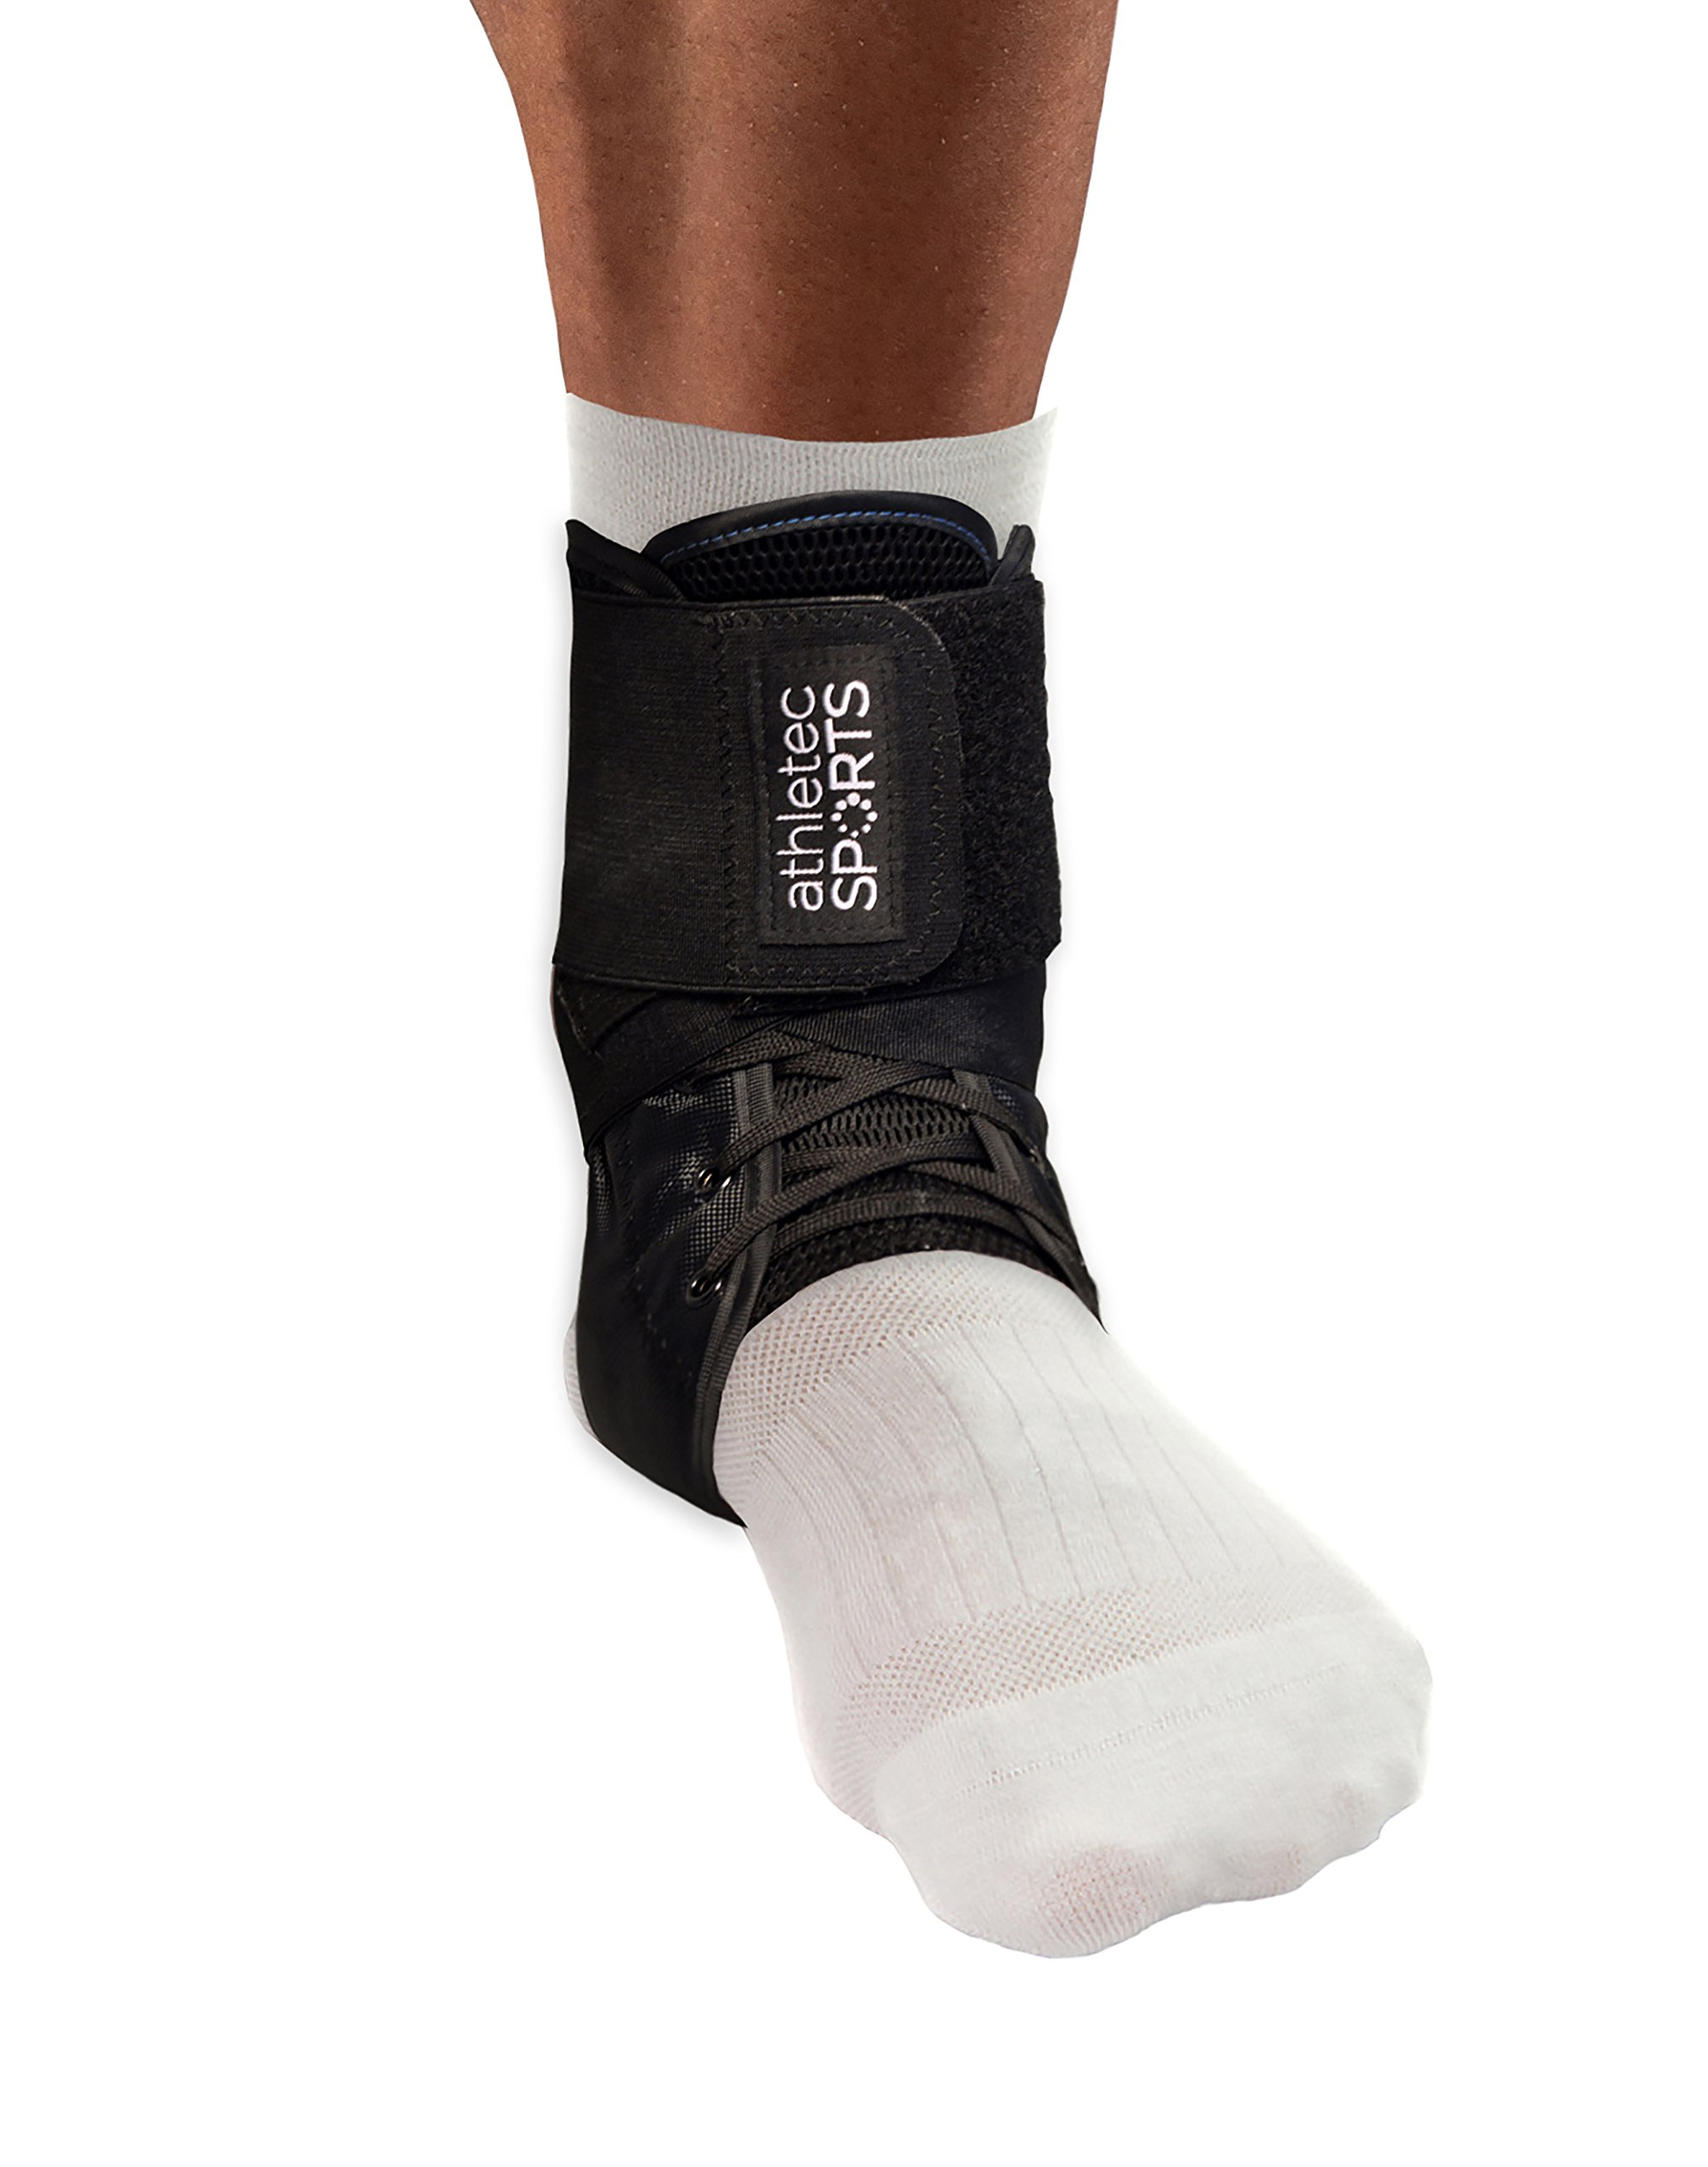 Athletec Sport Ankle Support Brace with Adjustable Laces, Stabilizer Support for Athletic Injuries, Joint Pain, Sprained Ankle, and Recovery - Size Large/X-Large in Black (One Piece)